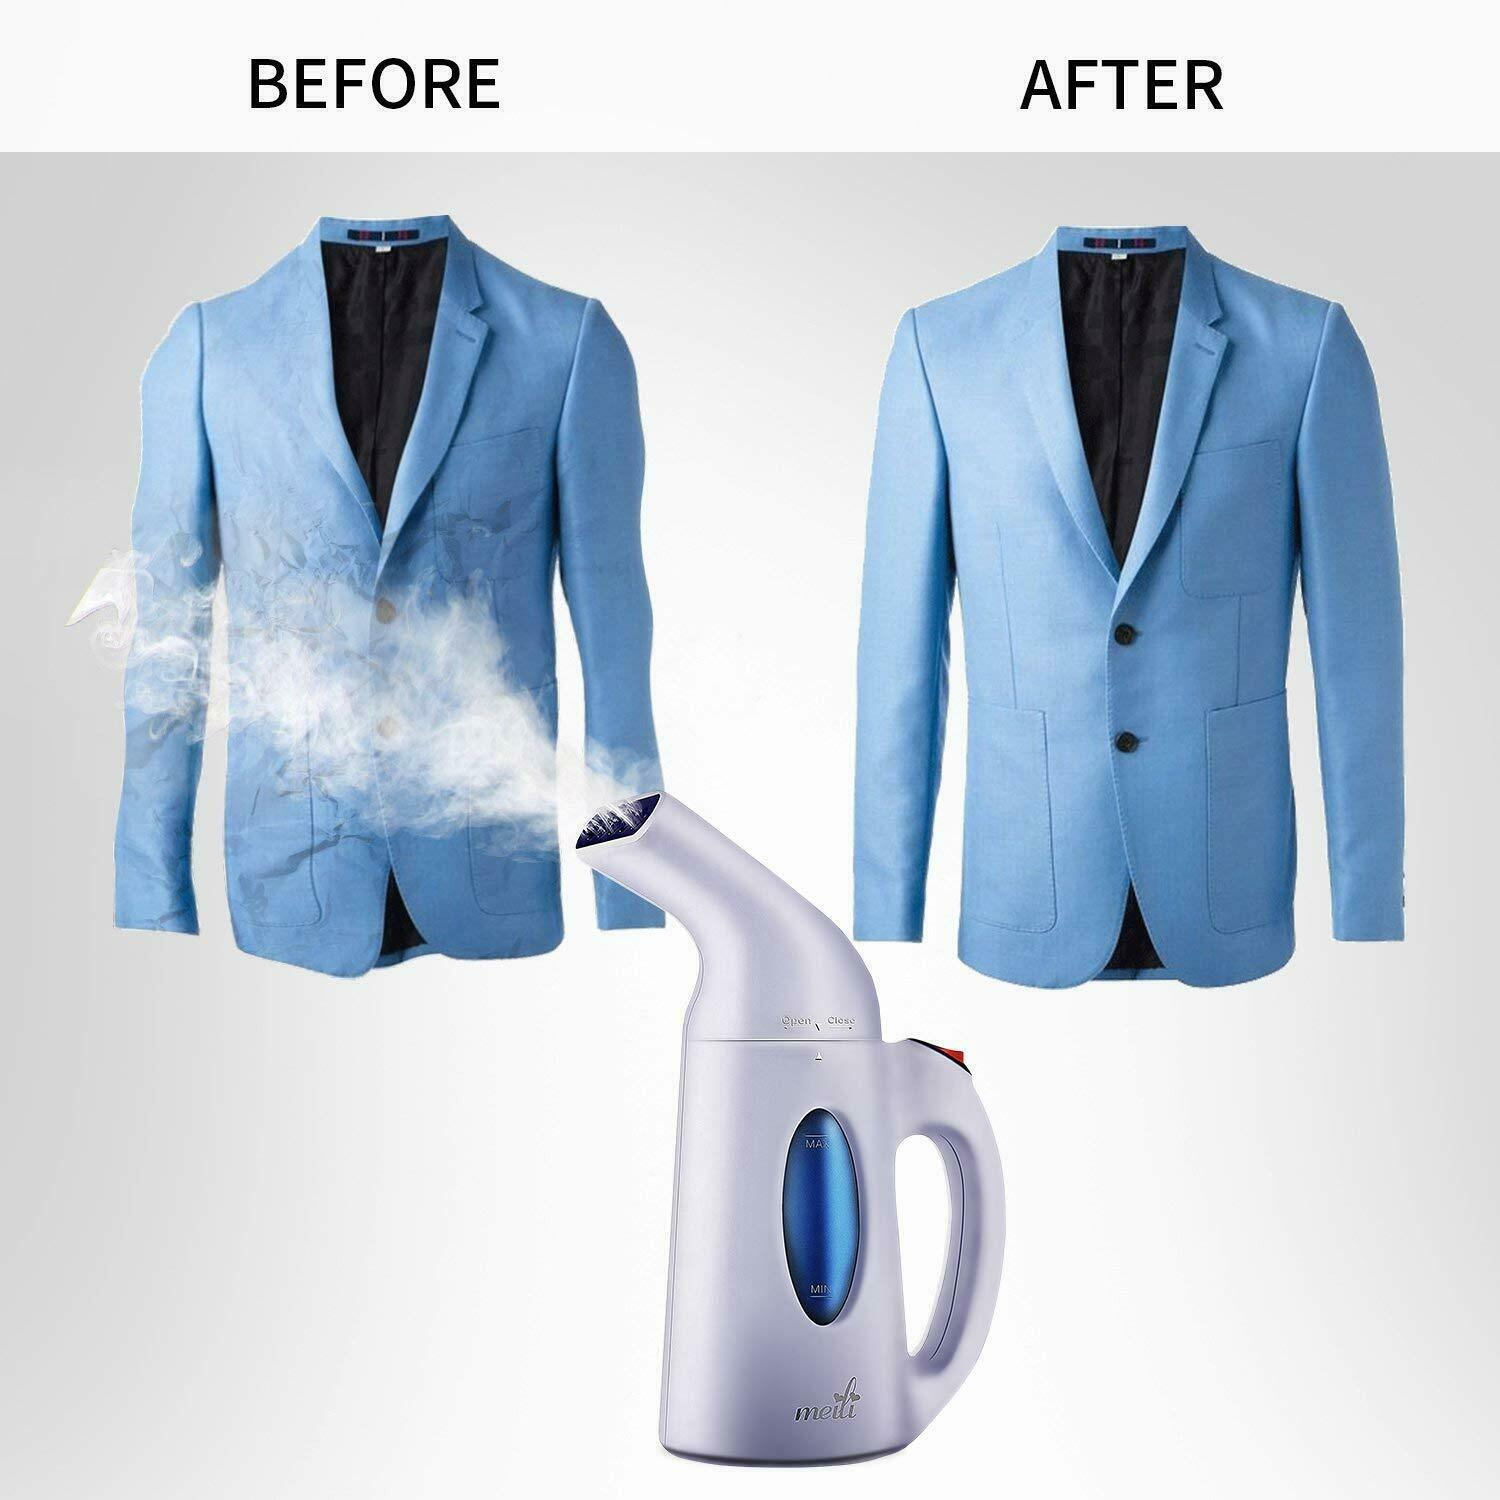 Steamer for Clothes 7-in-1|Wrinkle Remover Clean Softens Ste